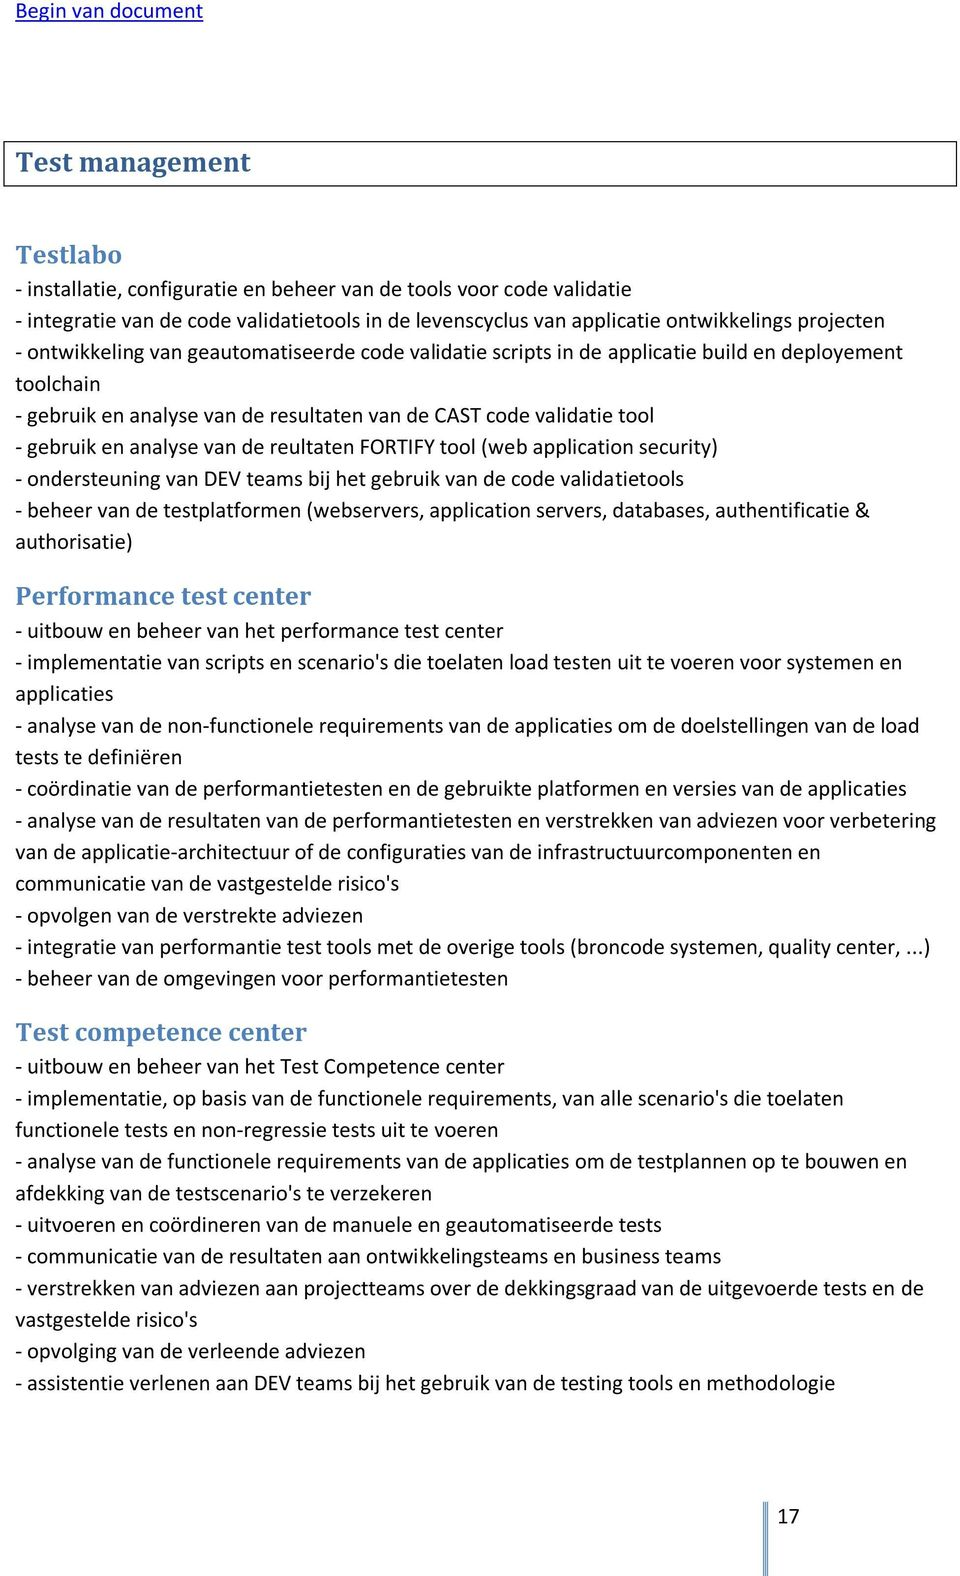 van de reultaten FORTIFY tool (web application security) - ondersteuning van DEV teams bij het gebruik van de code validatietools - beheer van de testplatformen (webservers, application servers,